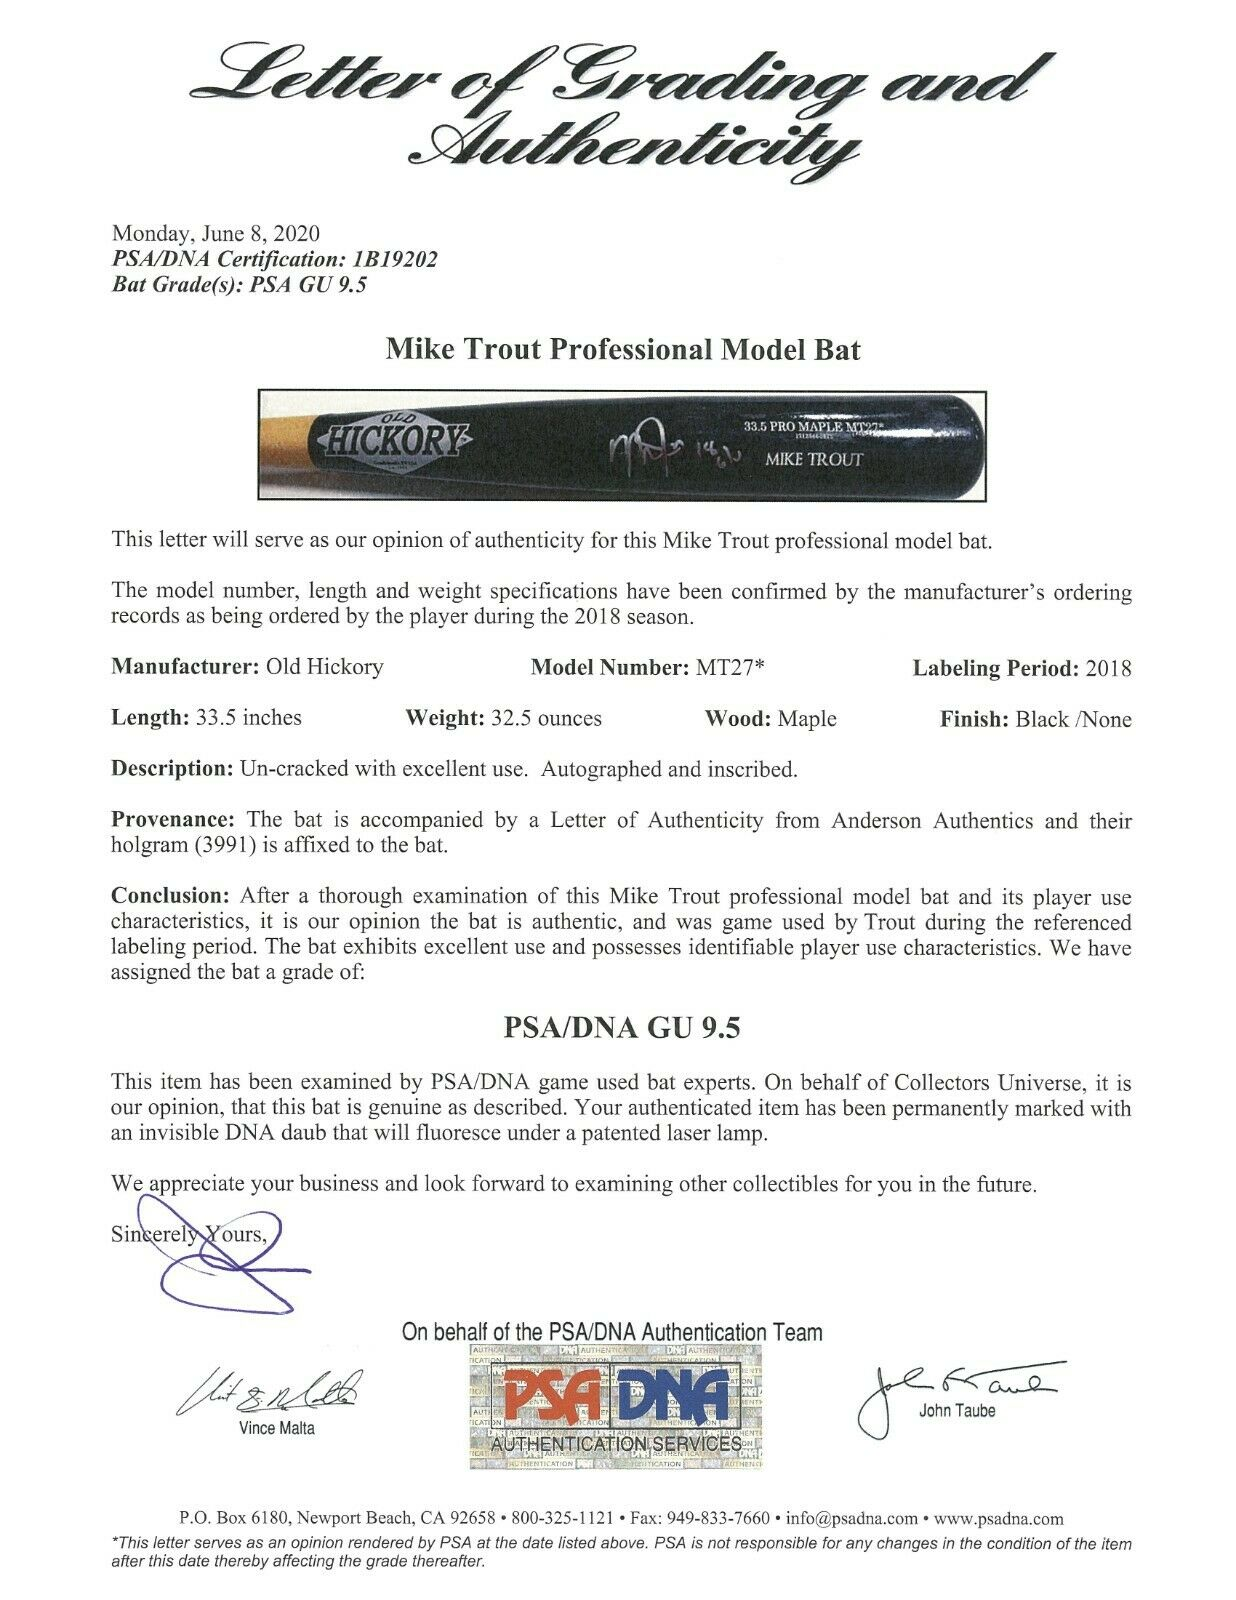 2018 Mike Trout Game Used & Signed Old Hickory MT27 Model Bat PSA DNA GU 9.5